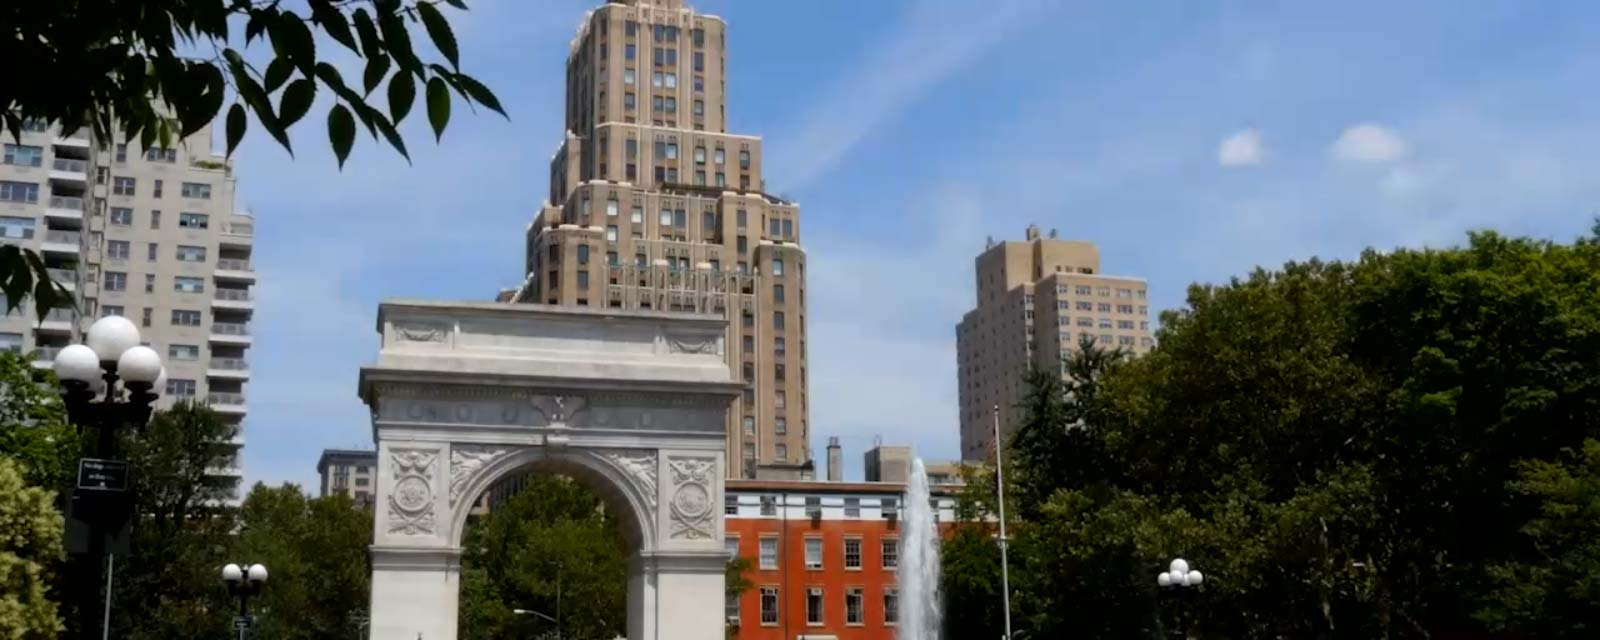 NYU Journalism - Washington Square Park